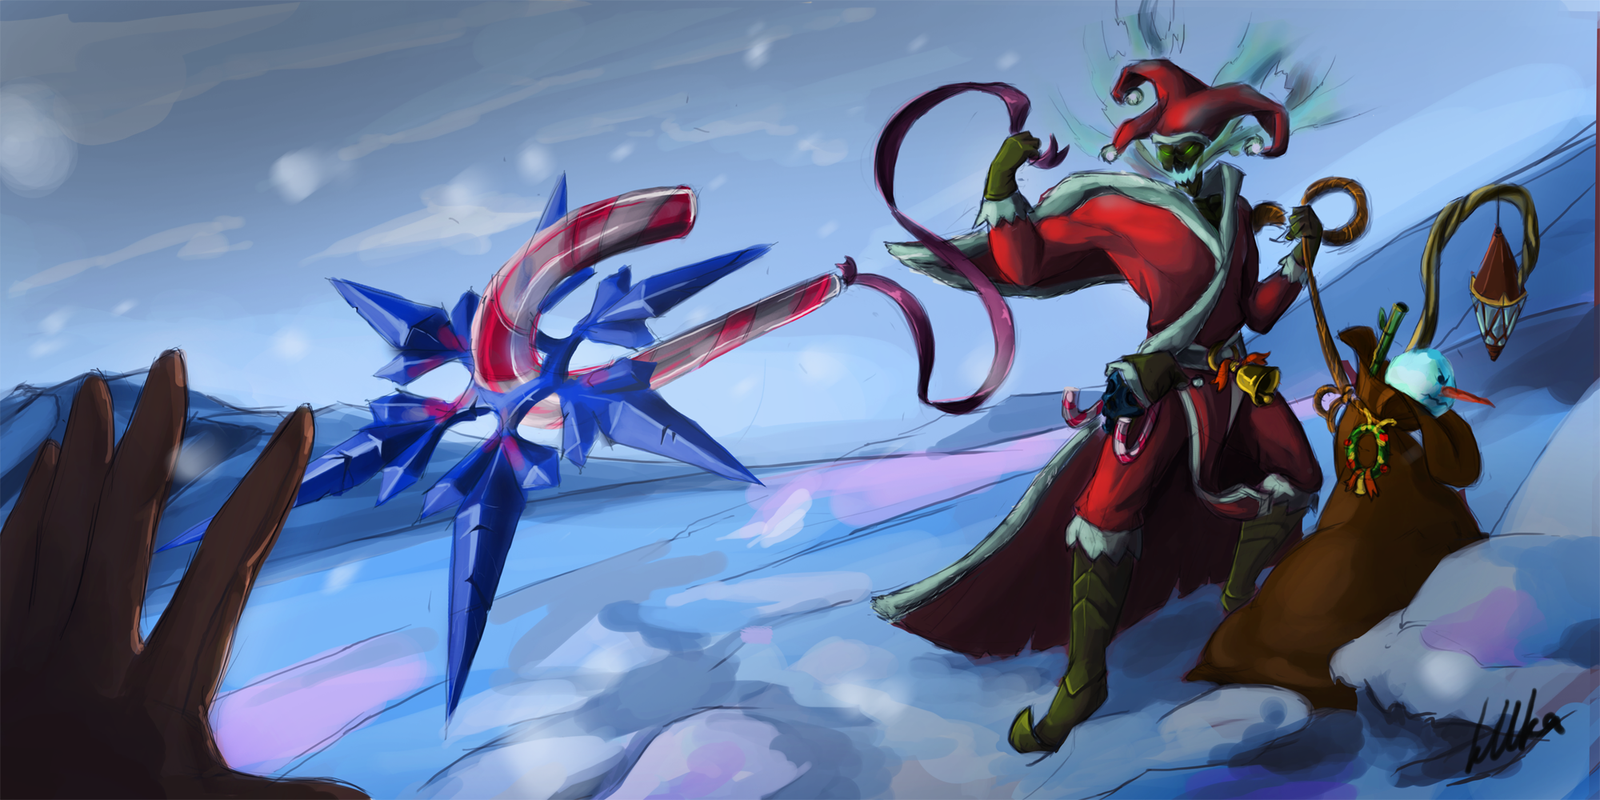 Thresh Stole My Christmas by kUkara4